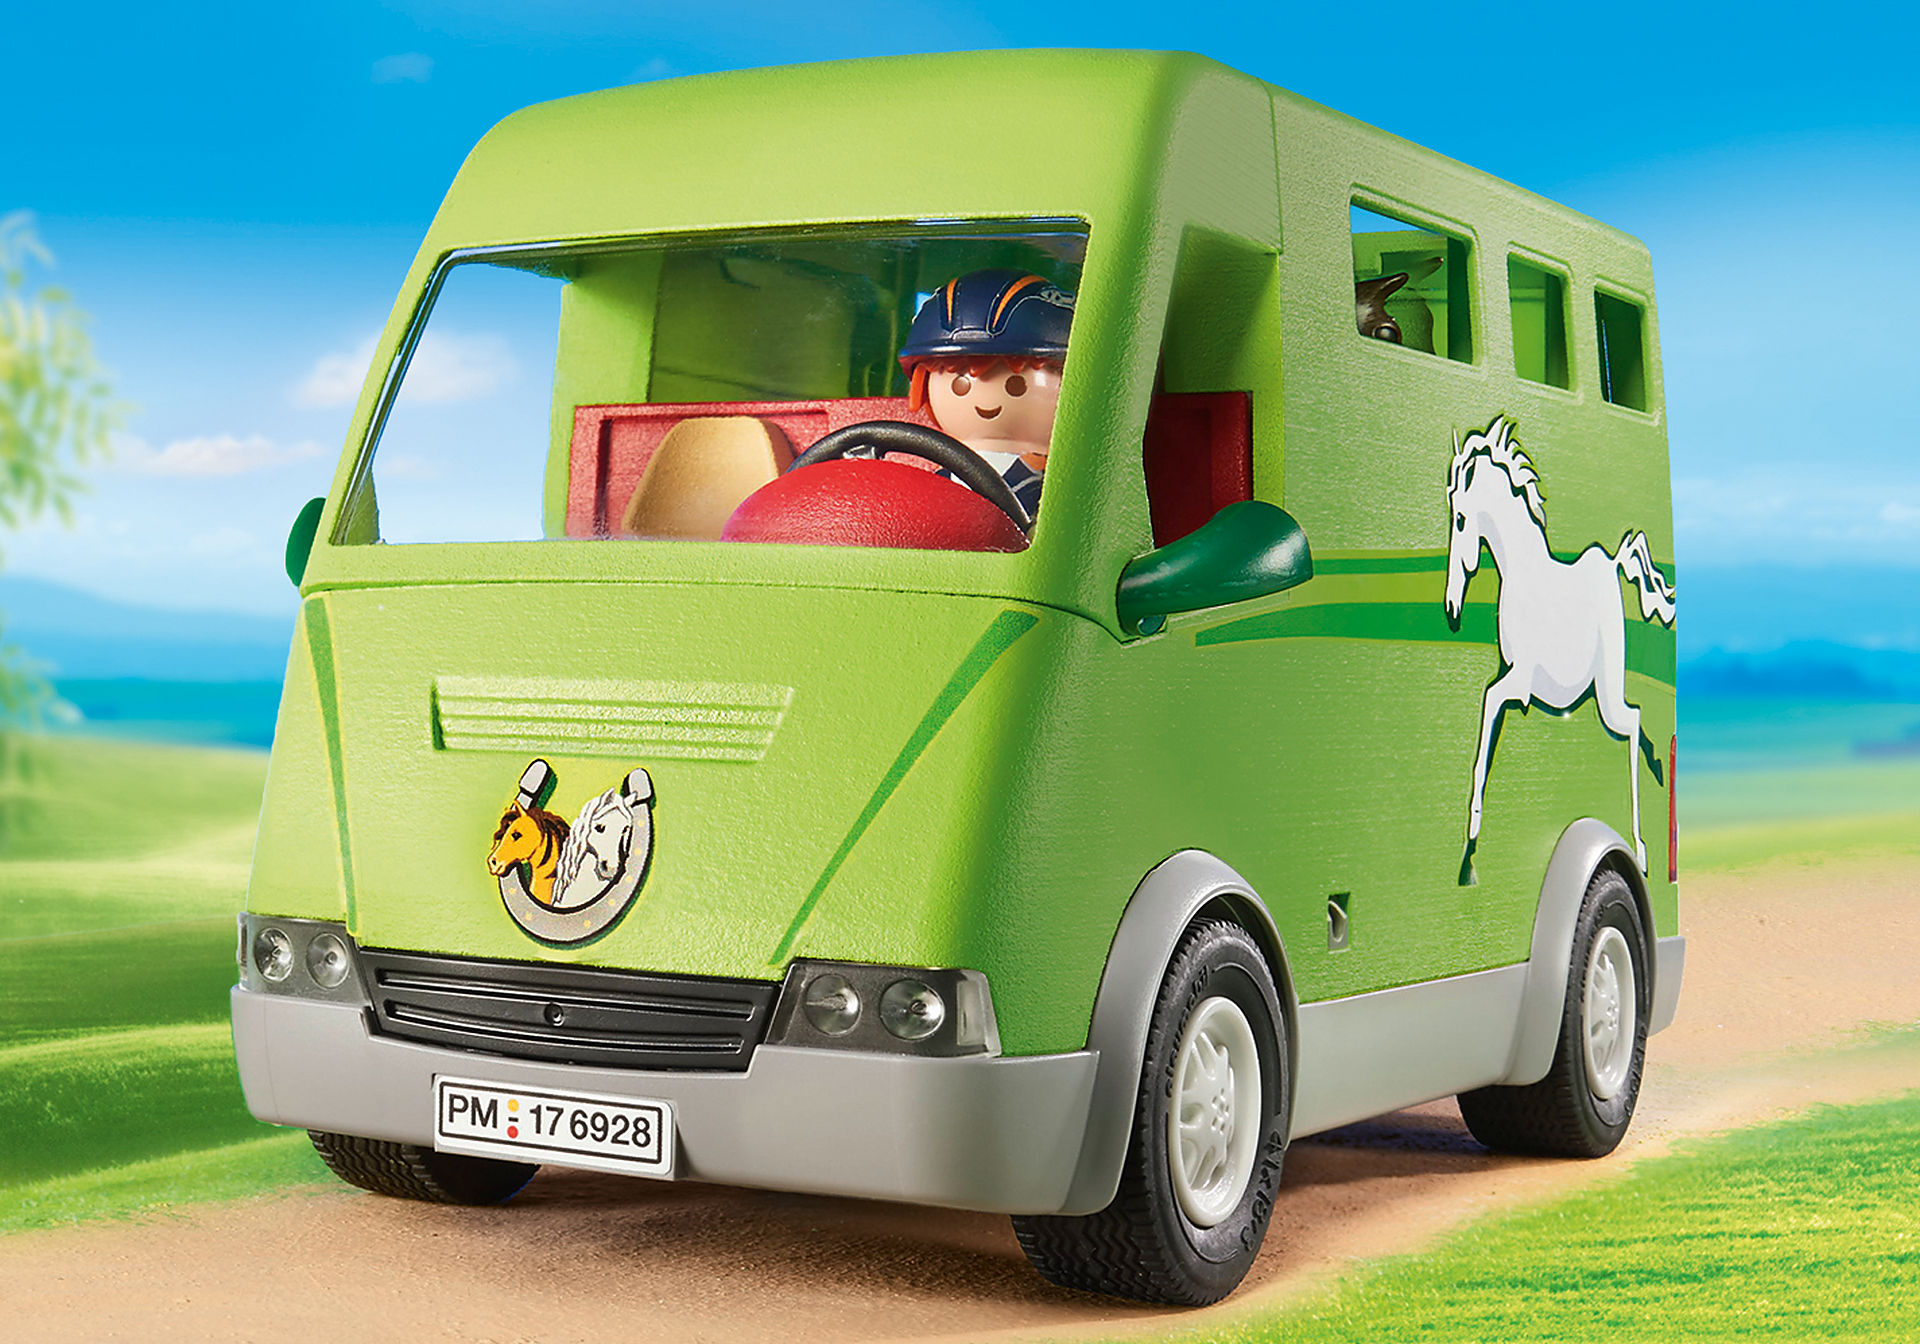 http://media.playmobil.com/i/playmobil/6928_product_extra3/Pojazd do przewozu koni